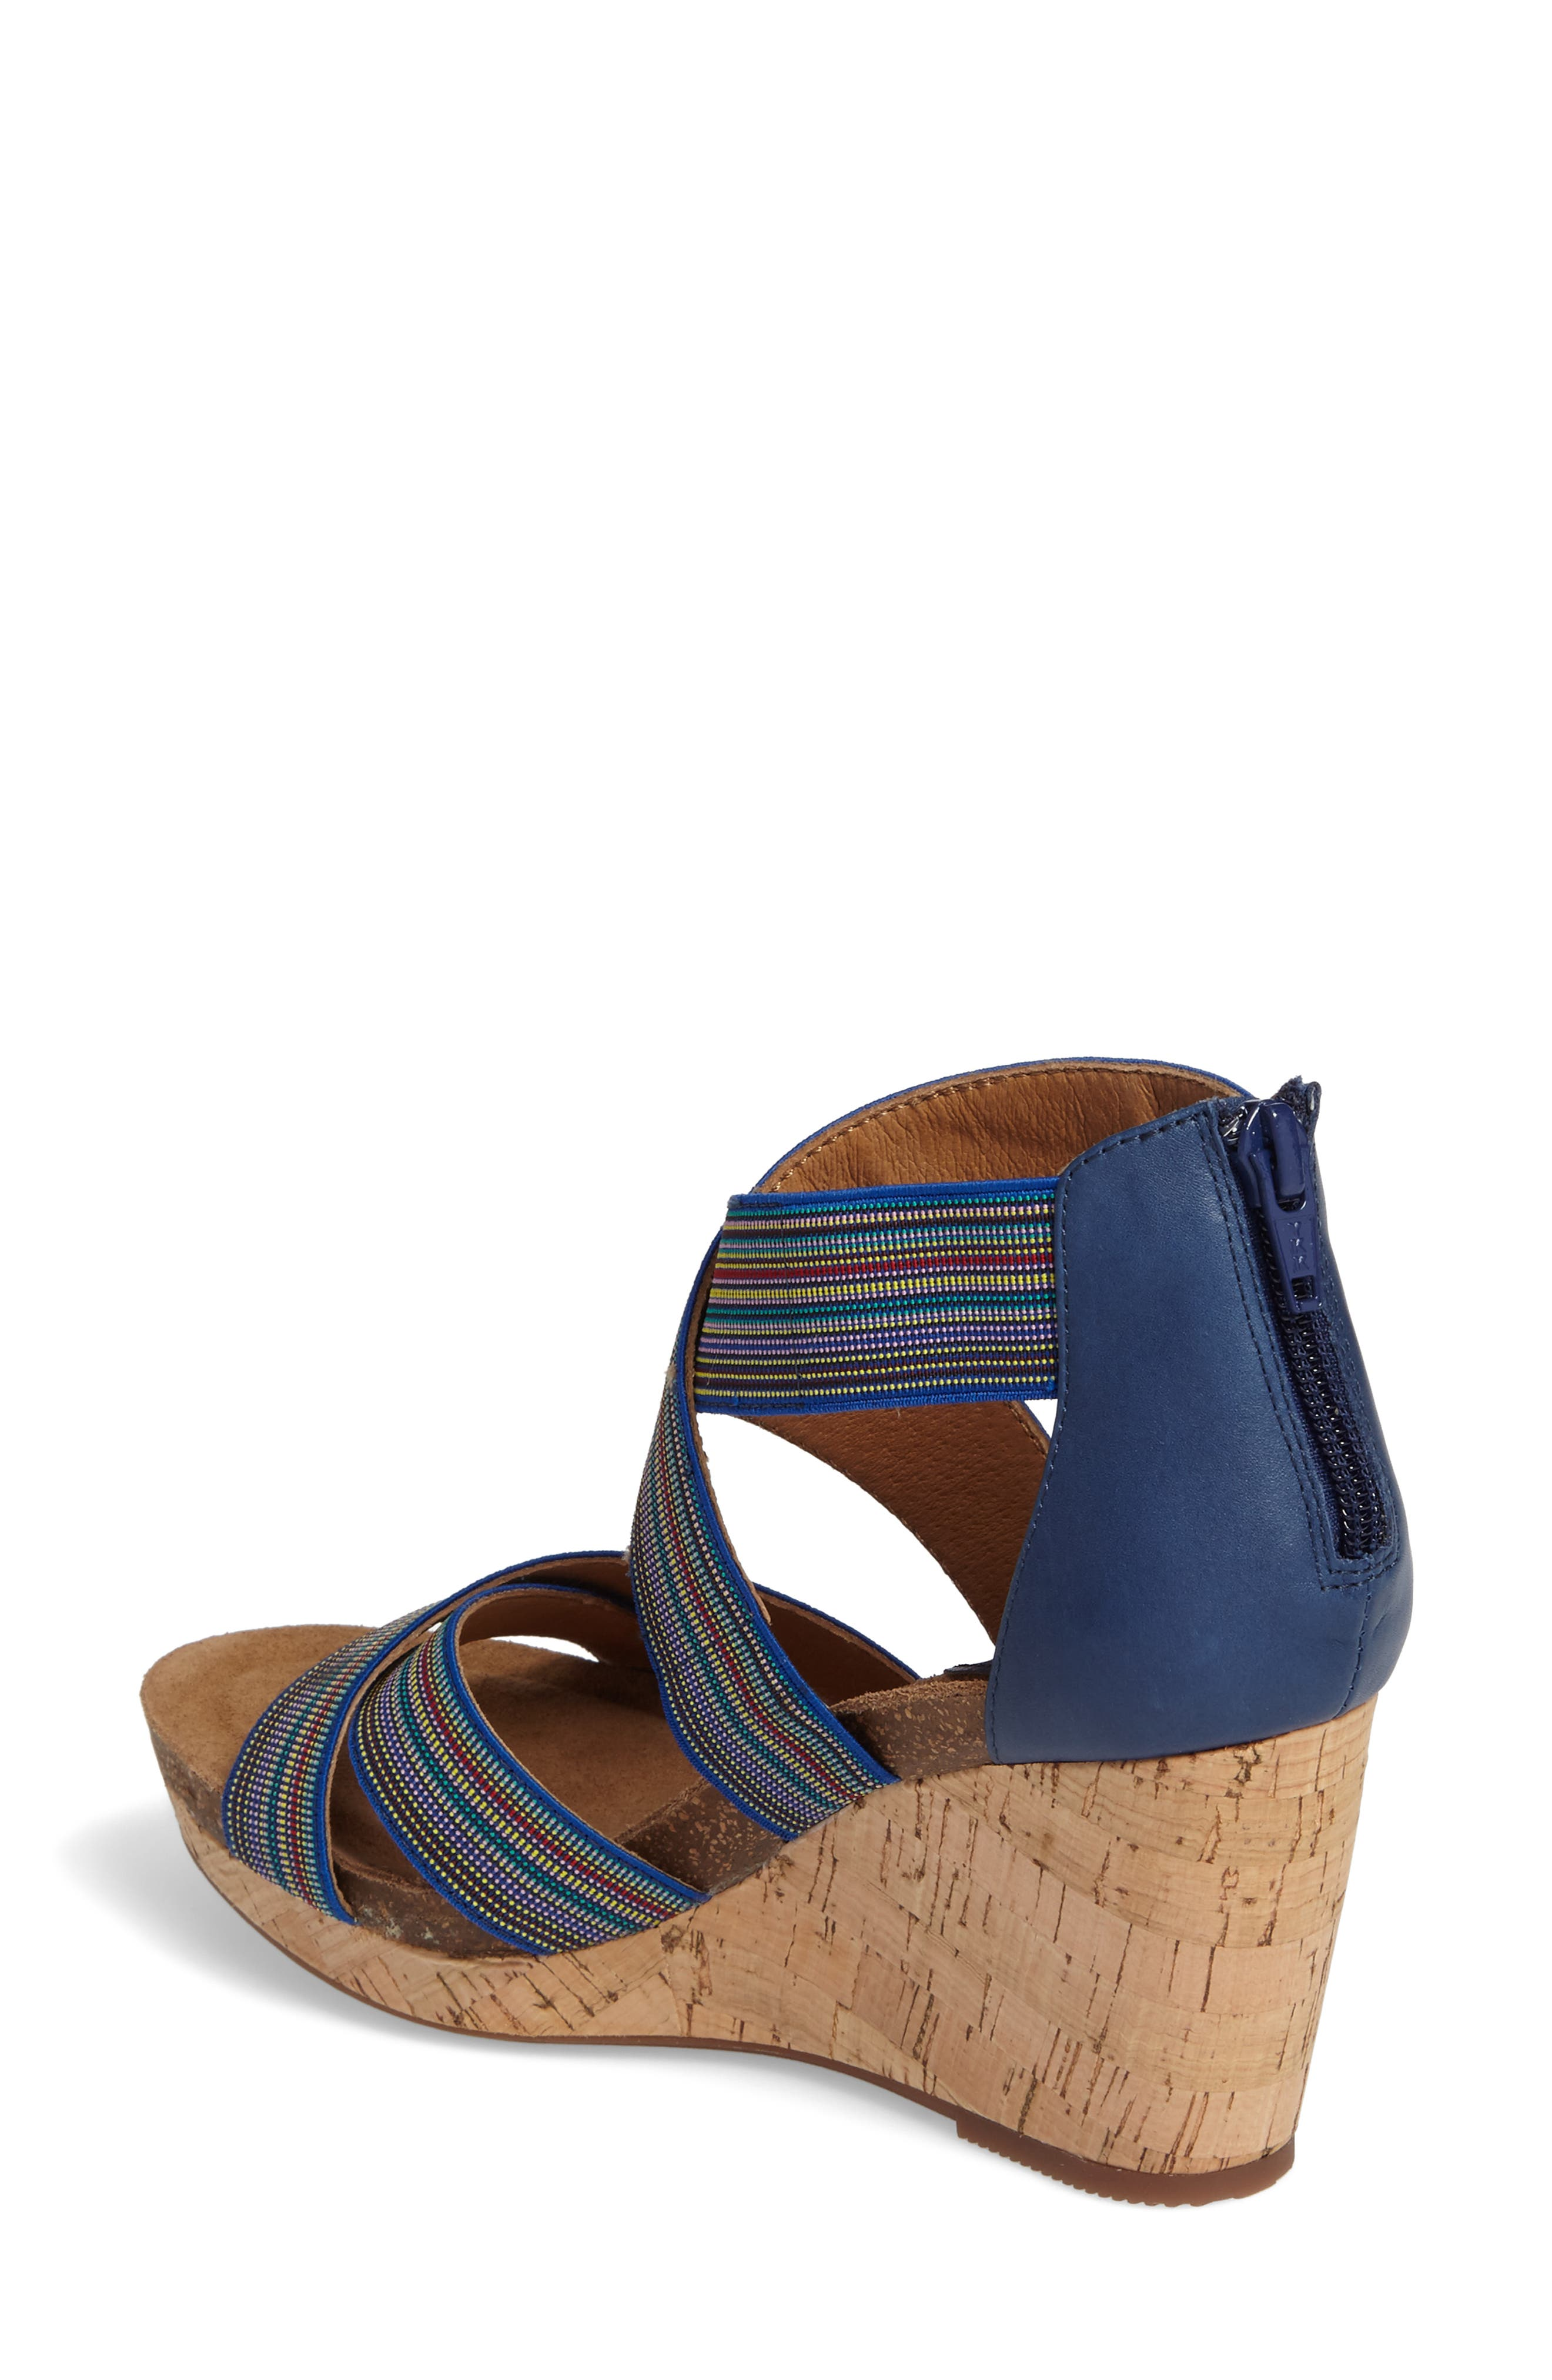 Cary Cross Strap Wedge Sandal,                             Alternate thumbnail 5, color,